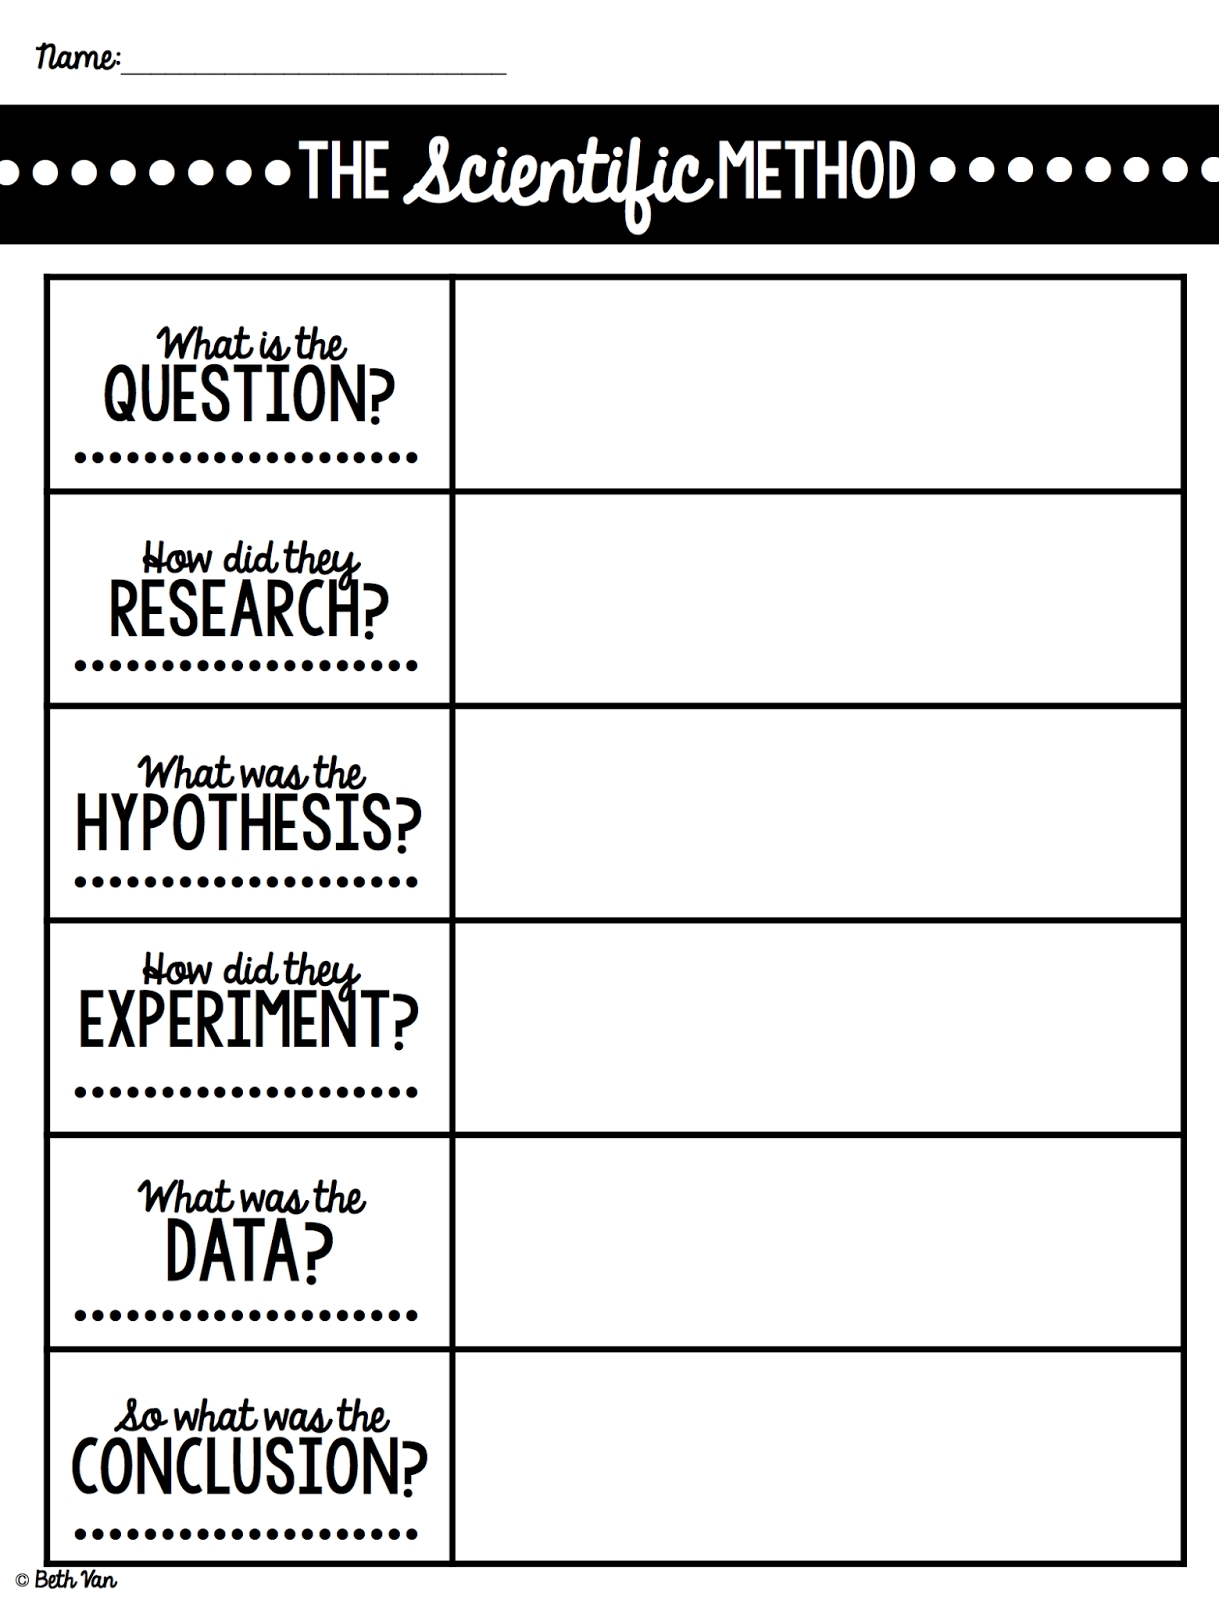 Mythbusters And The Scientific Method Worksheet